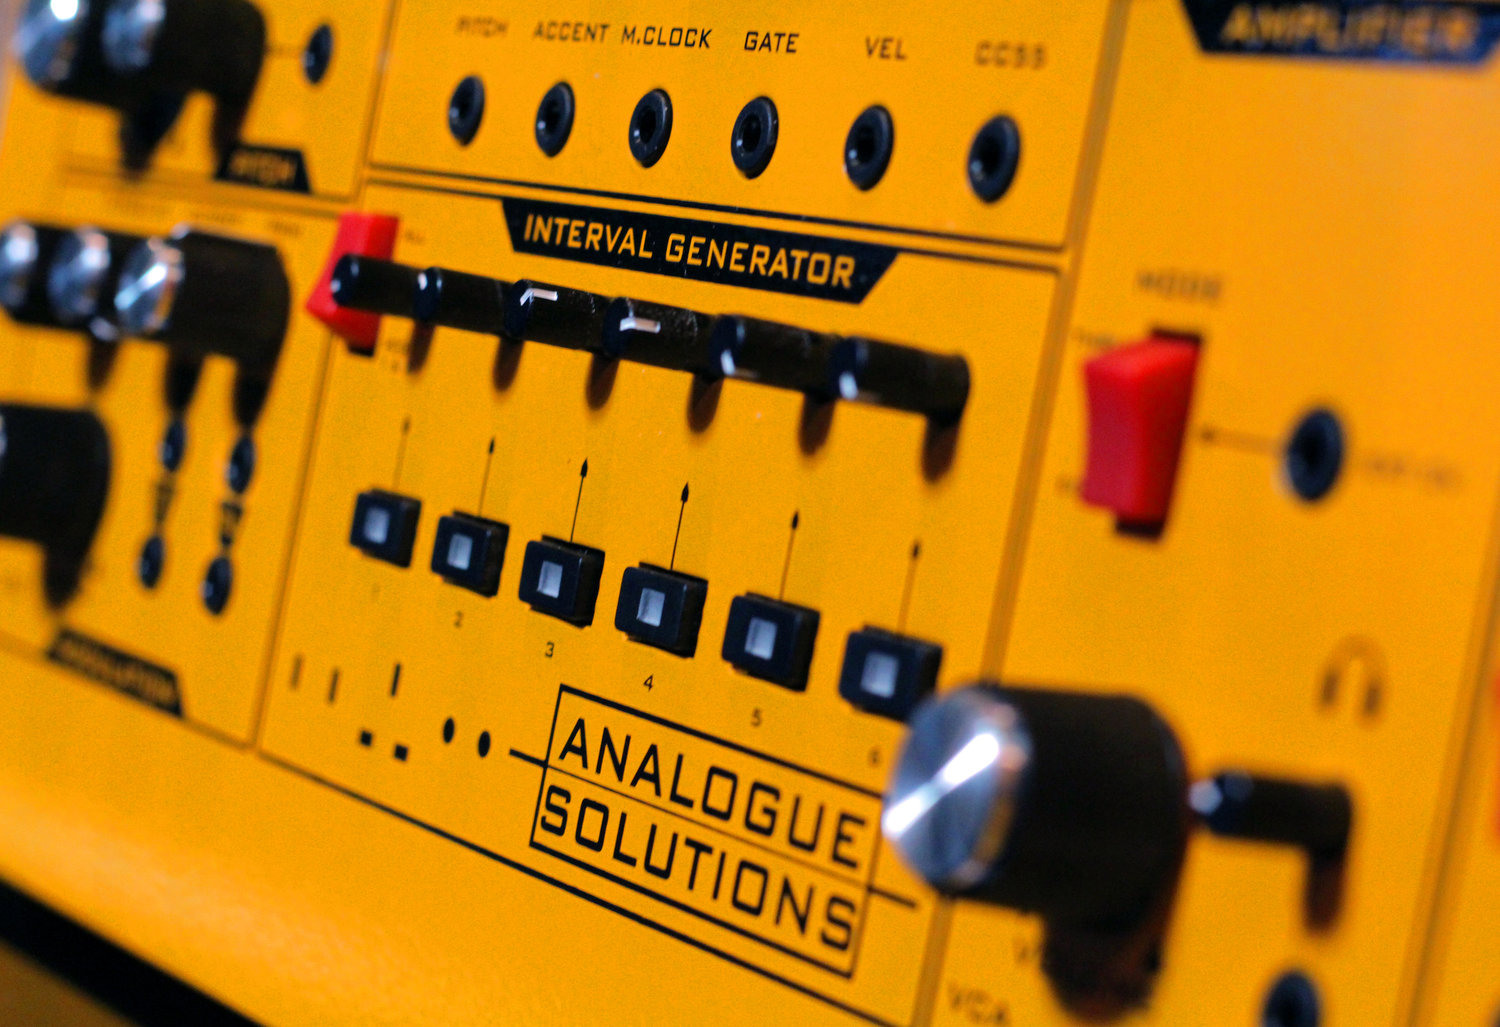 Fusebox Analogue Solutions Instrument Panel Fuse Box